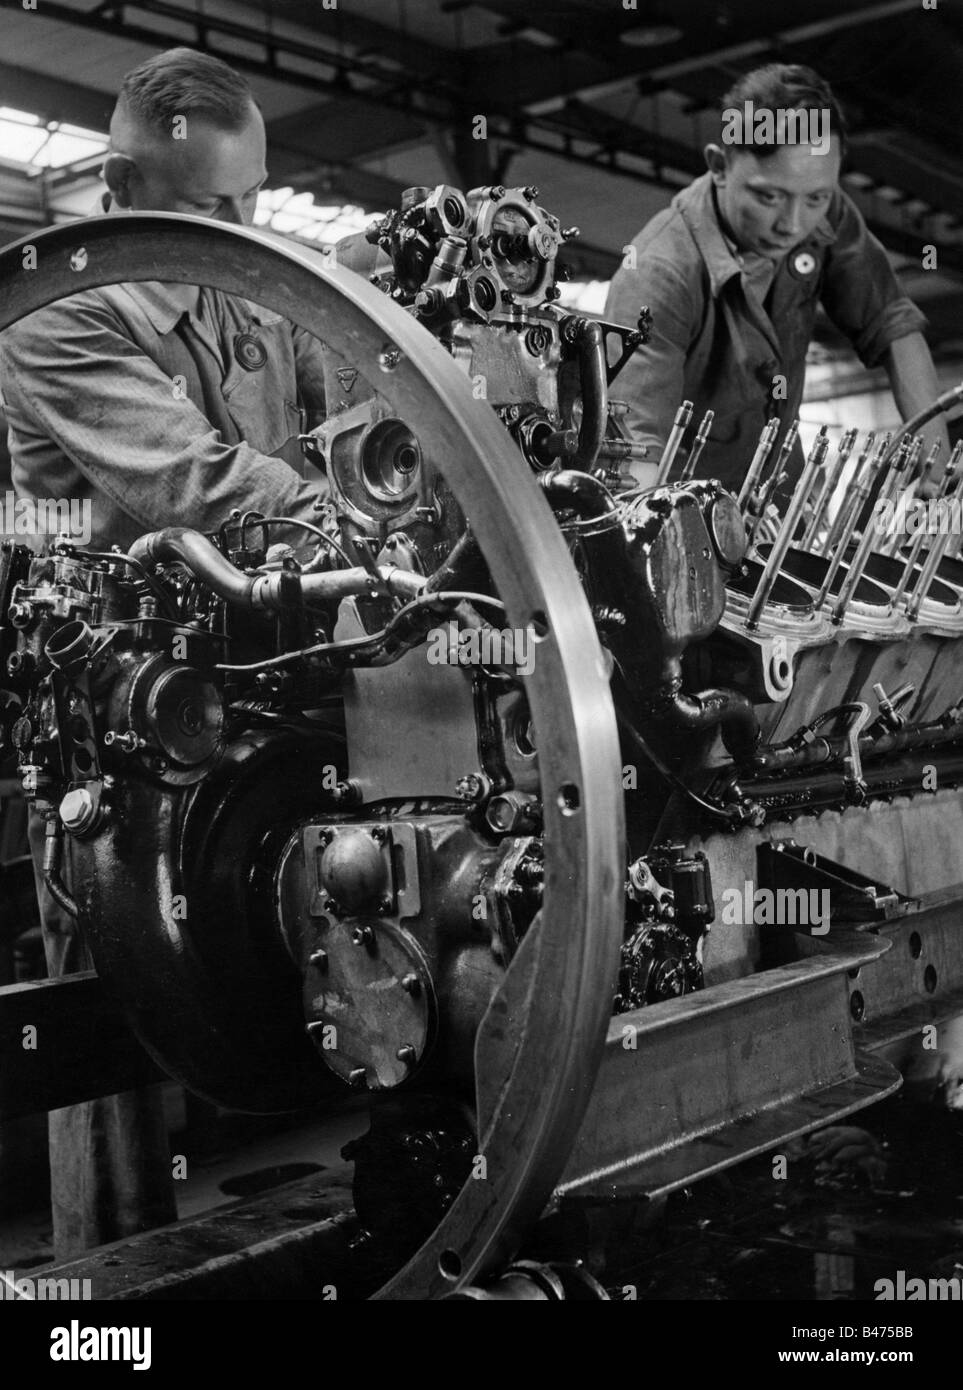 events, Second World War / WWII, Germany, armaments industry, checking a 1000 horsepower enginge, Additional-Rights - Stock Image